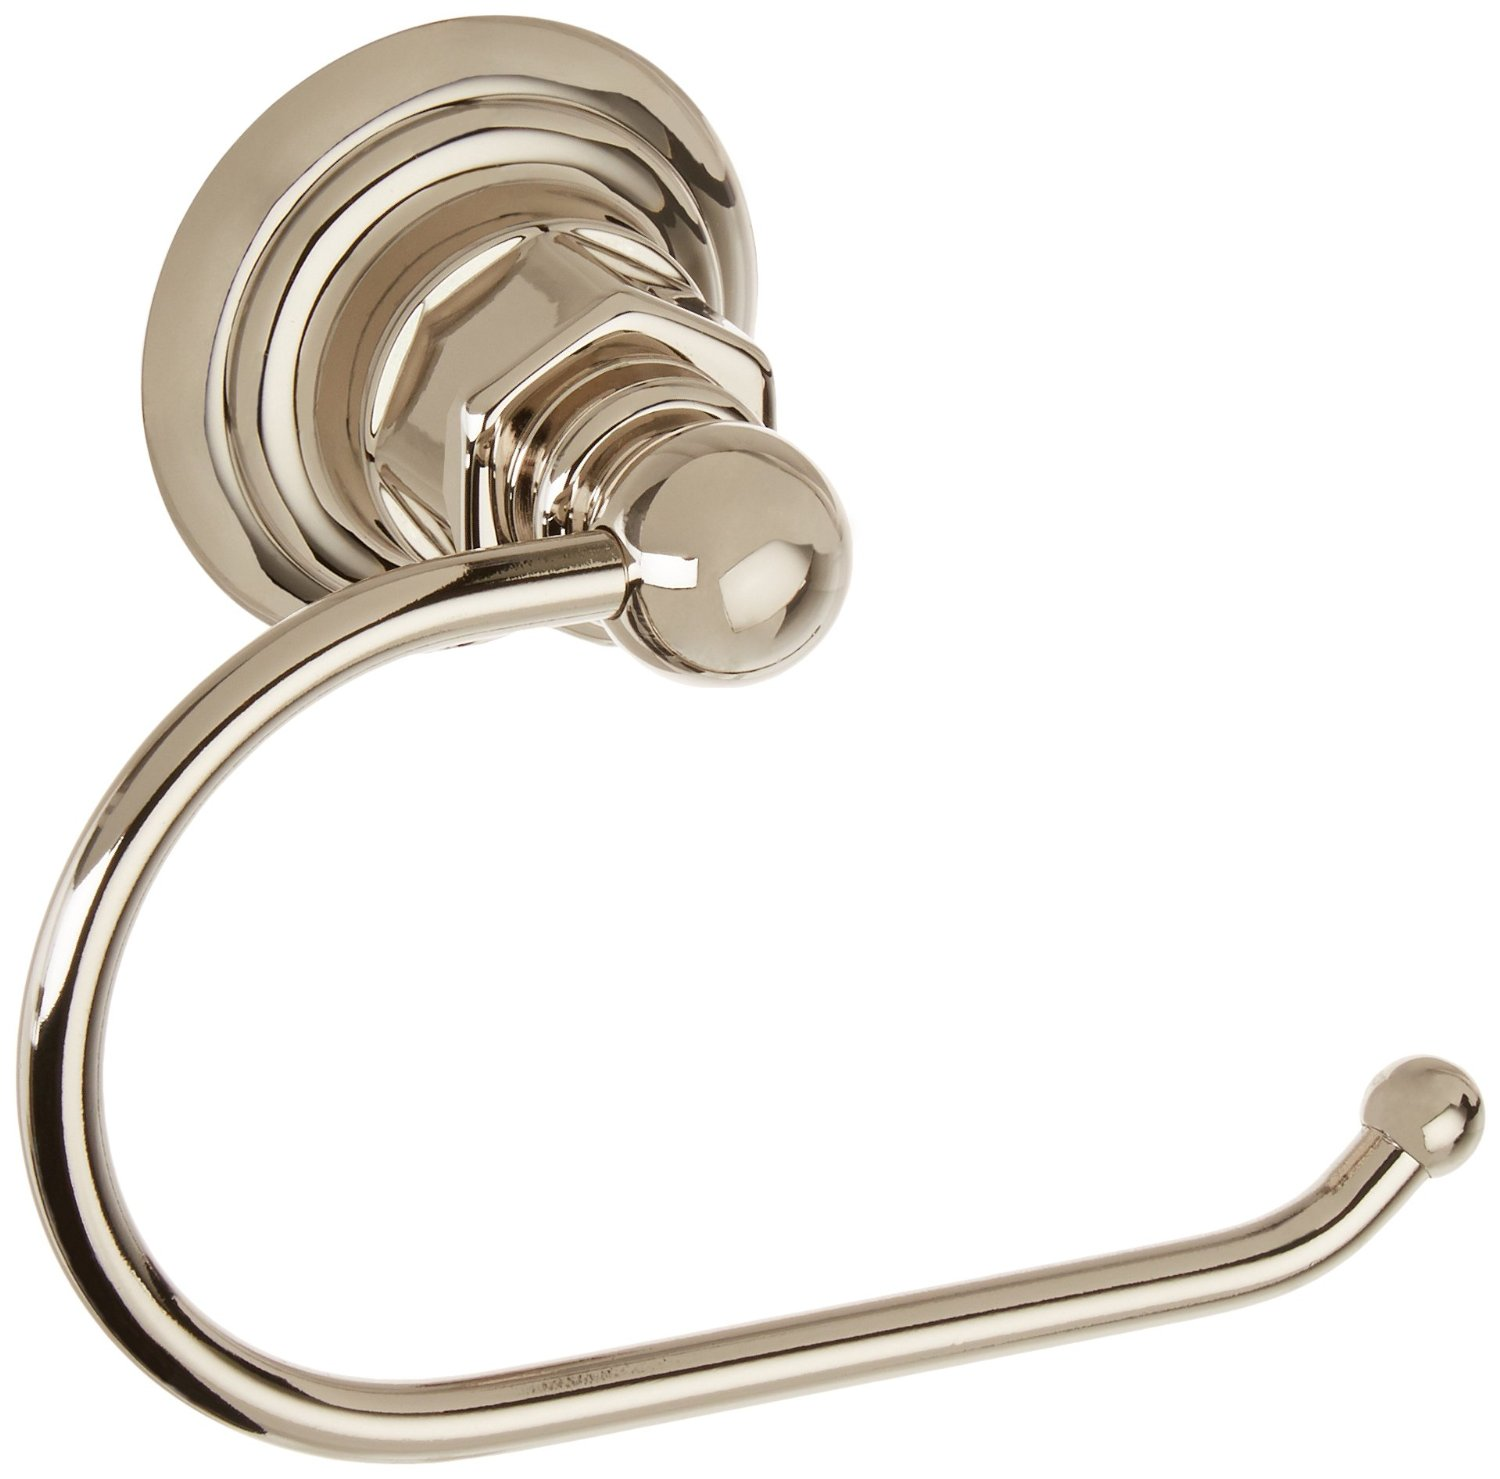 Polished Nickel Shiny Silver Matching Screws Included RCH Hardware Solid Brass Double Arm Hook